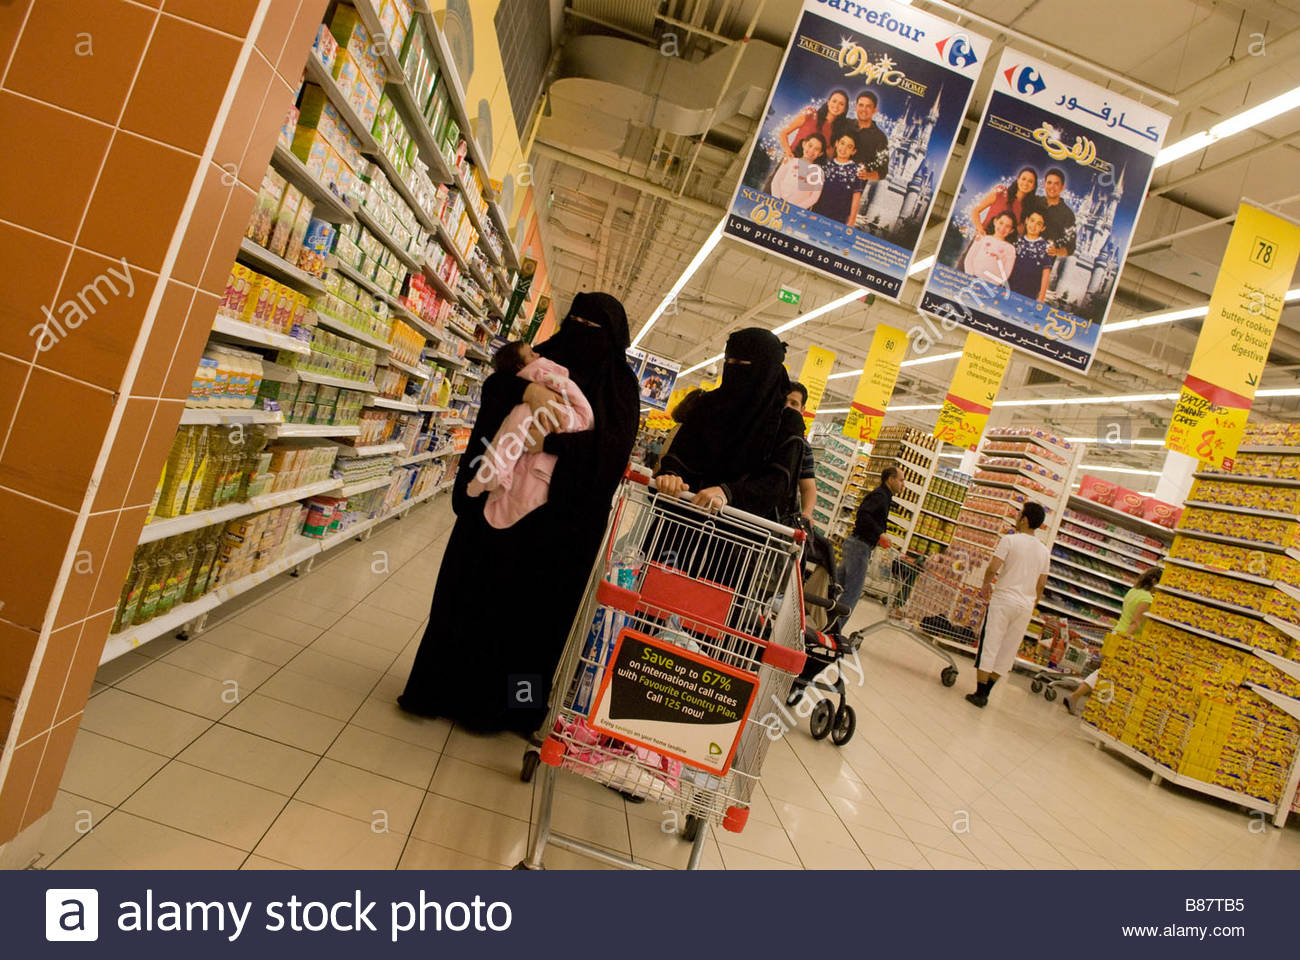 dubai UAE mall of the emirates,carrefour supermarket - Stock Image